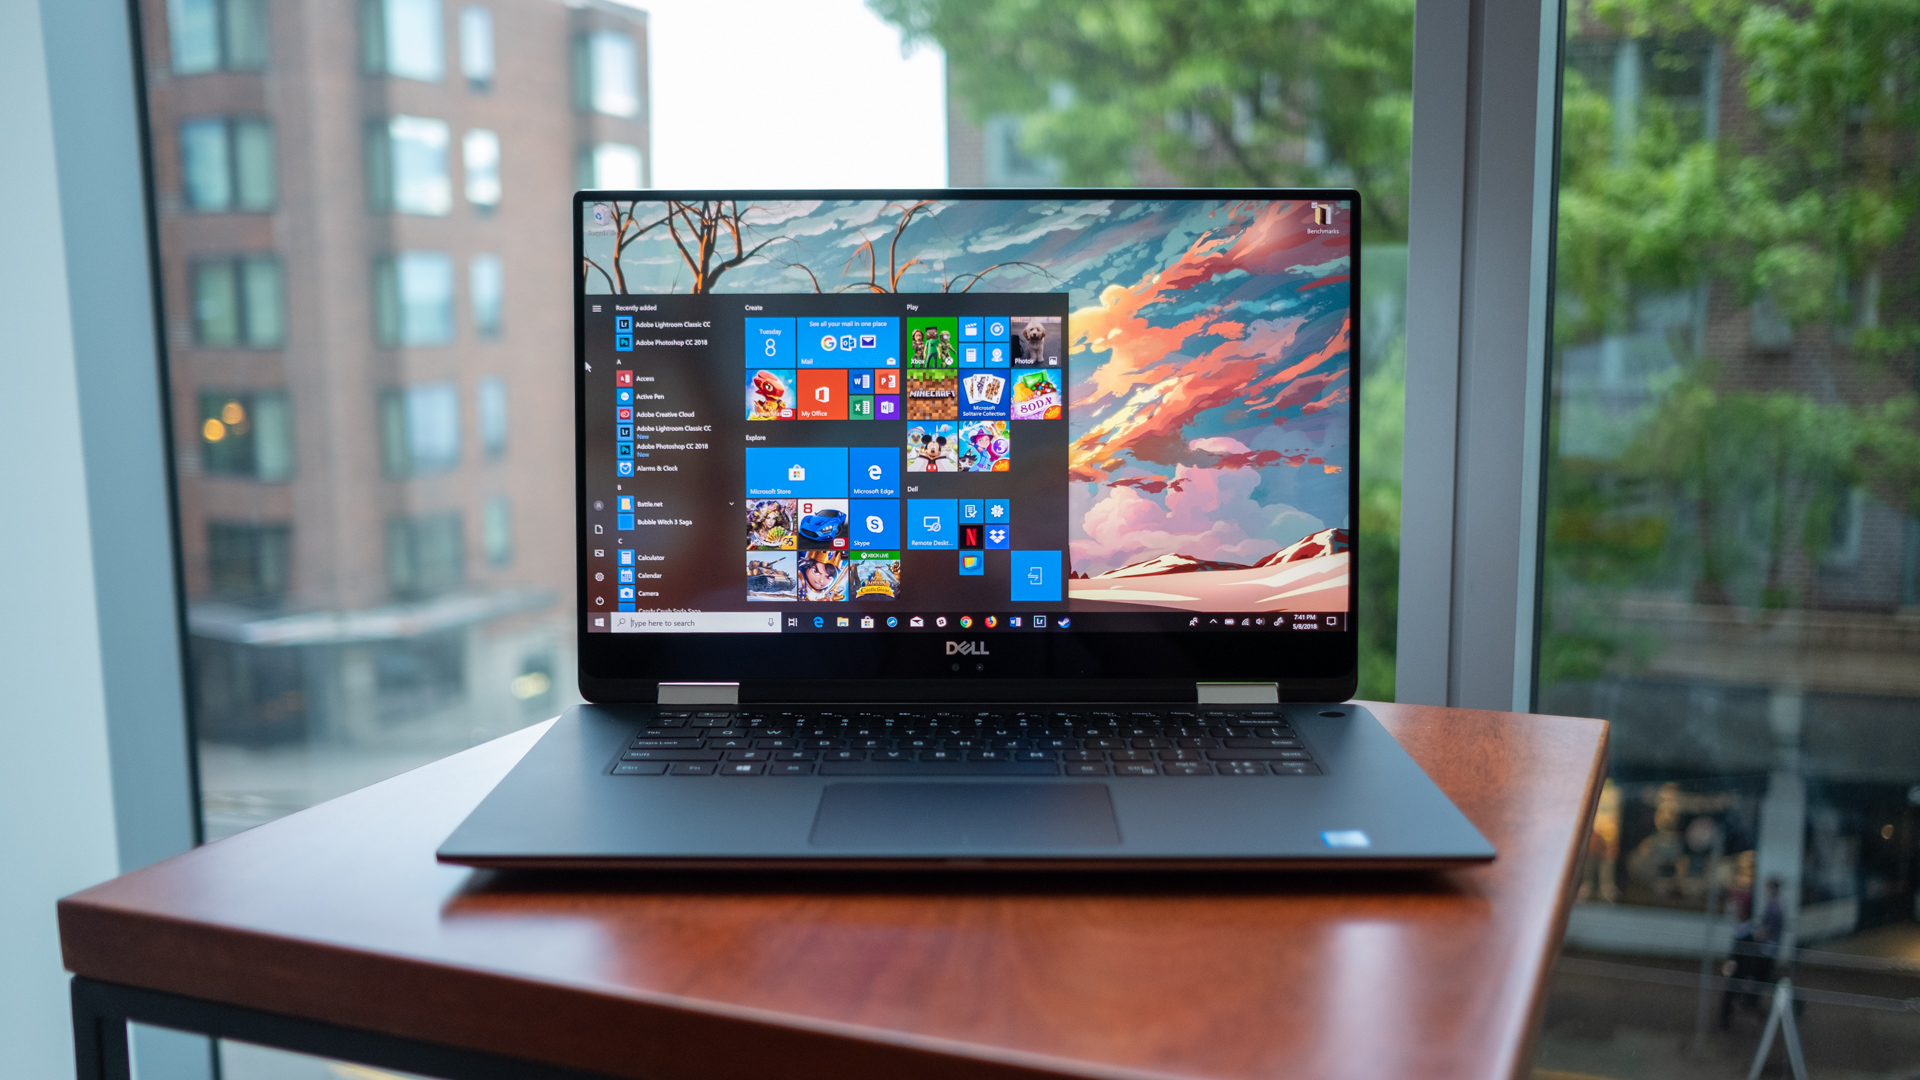 Dell Xps 15 2 In 1 Review Techradar Magnetic Microprocessors Can Make High End Computers Future